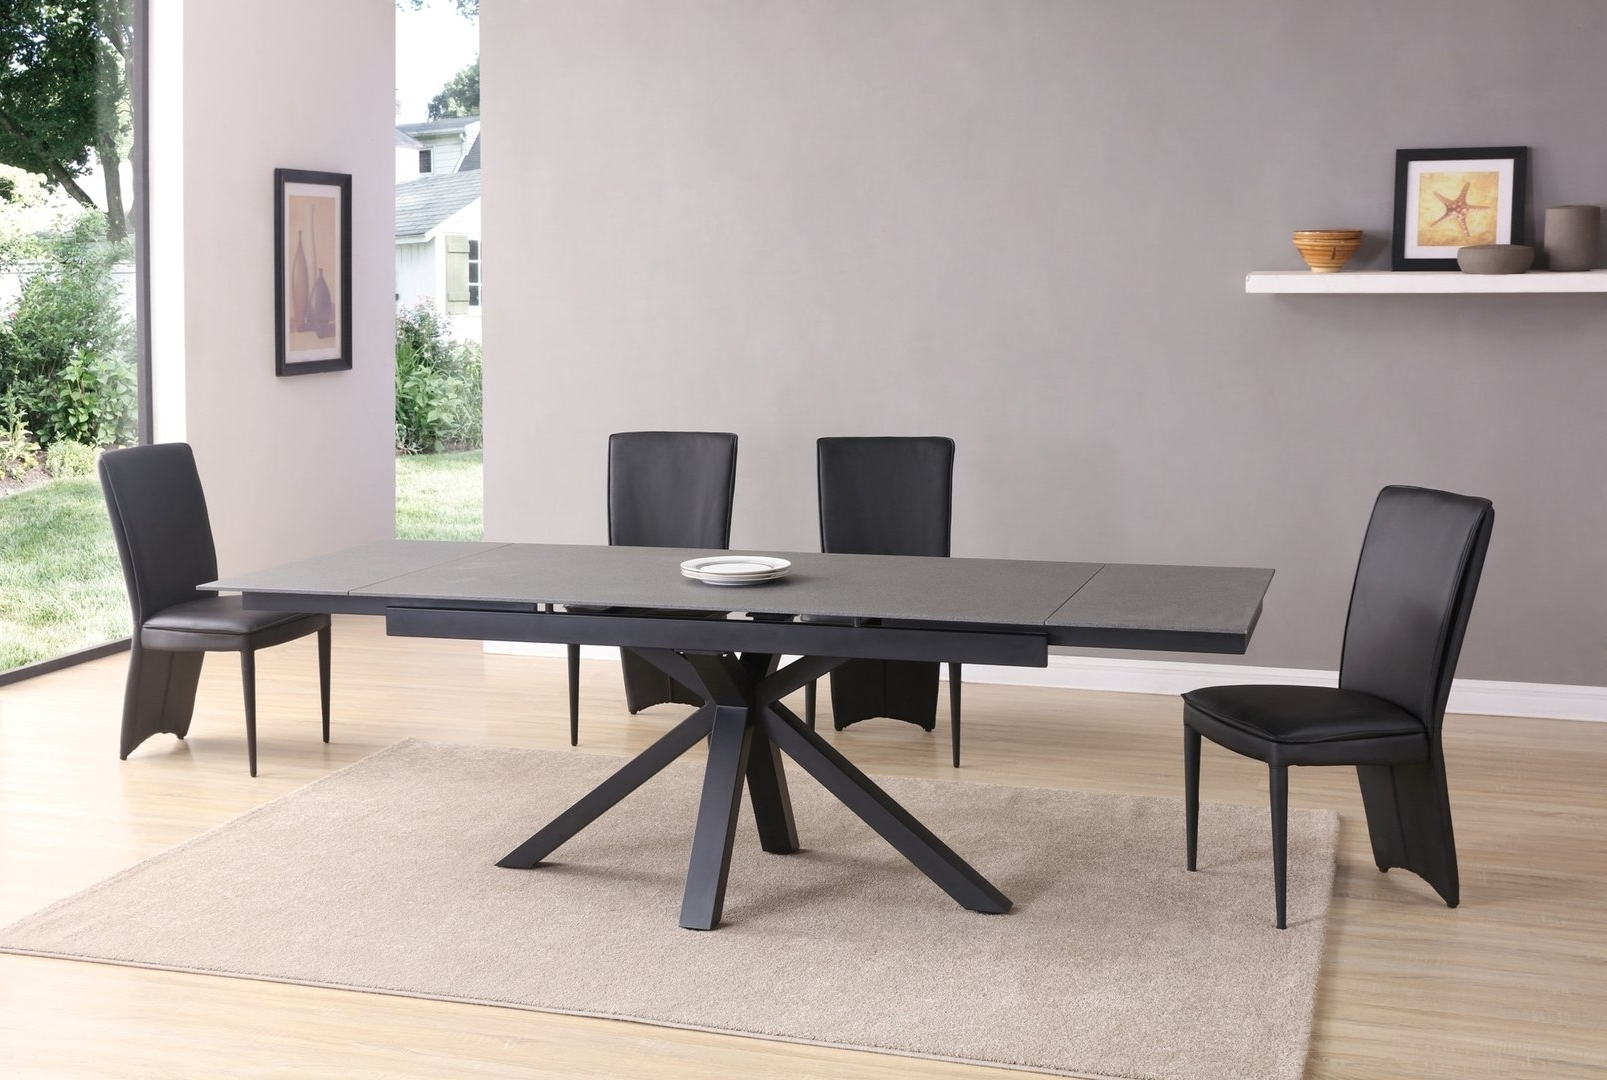 Preferred Black & Grey Stone Glass Dining Table And 10 Chairs – Homegenies Inside Dining Table And 10 Chairs (View 16 of 25)